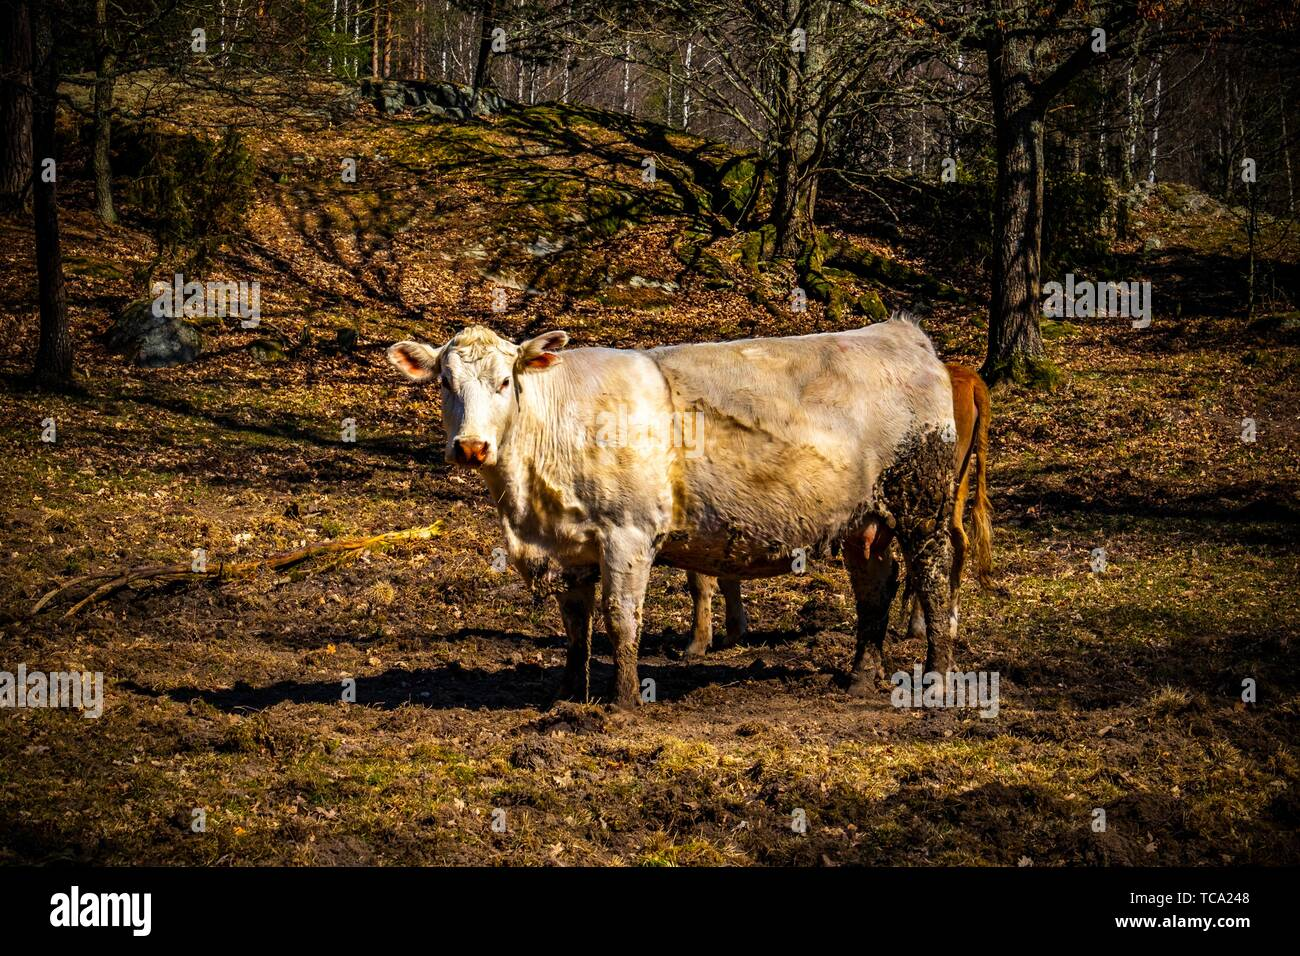 Cow grazing on a field in Sweden. - Stock Image